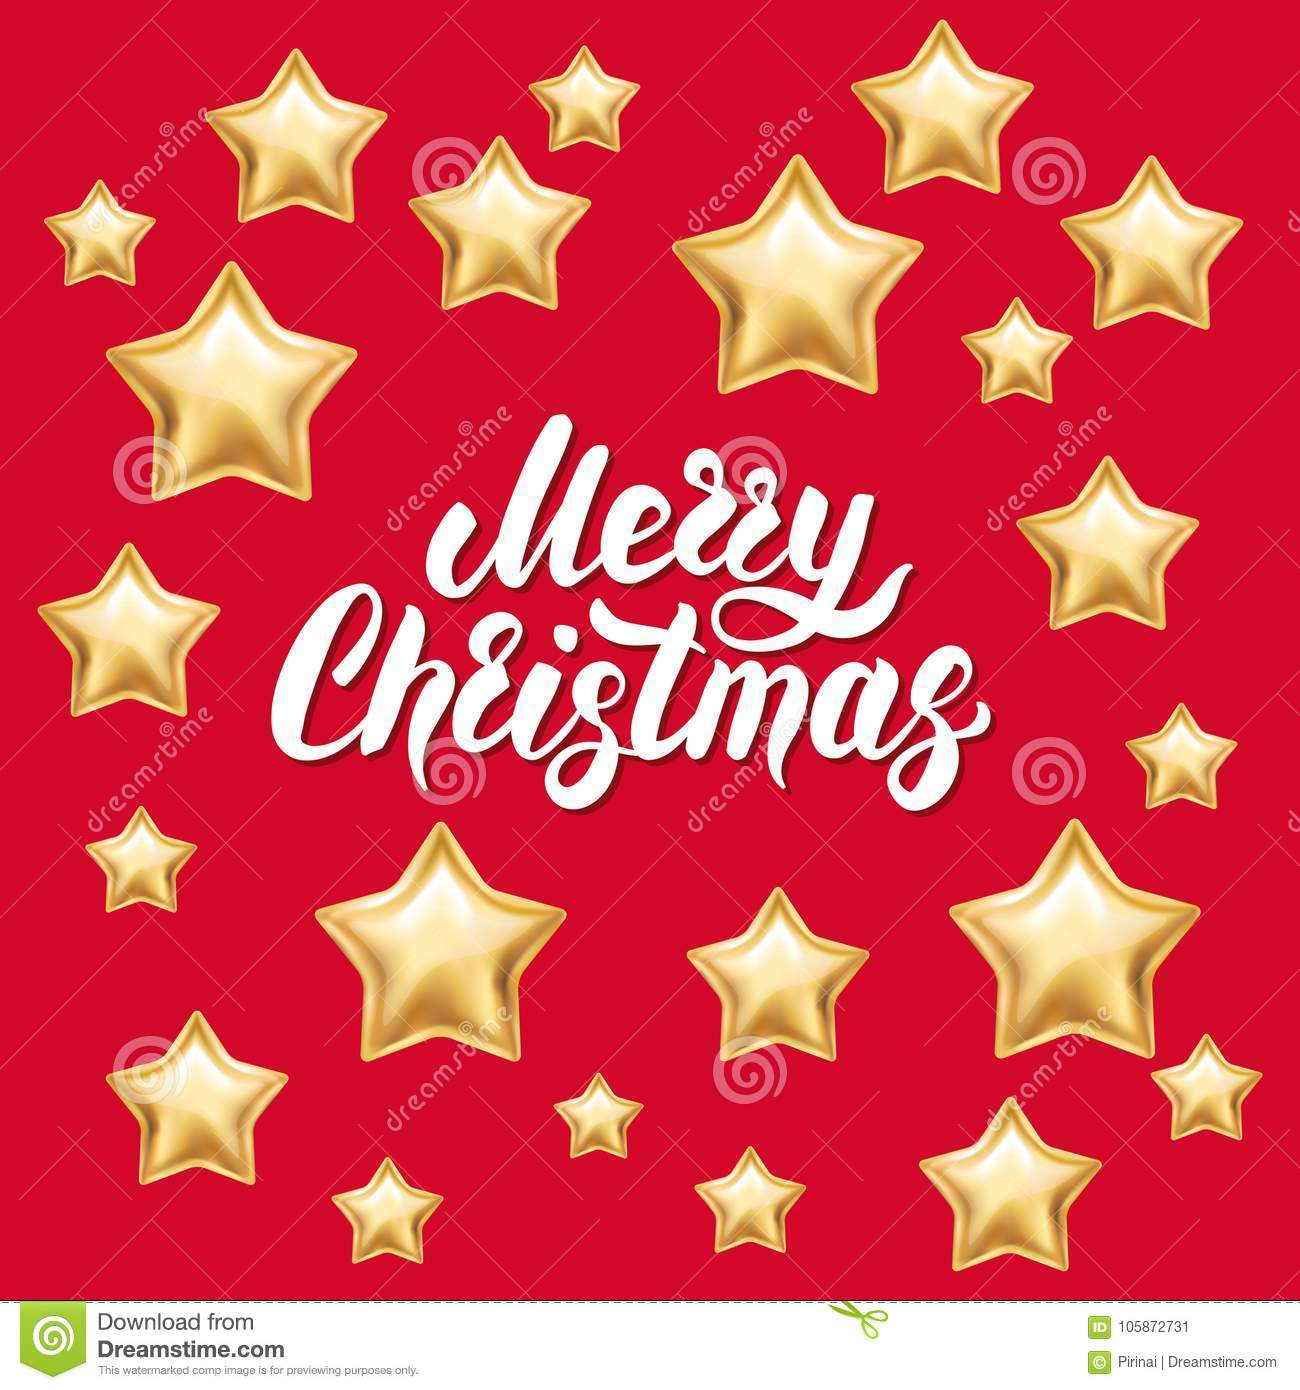 gold star merry christmas happy new year invitation background banners christmas banner with text party invitation celebration logo new year 2018